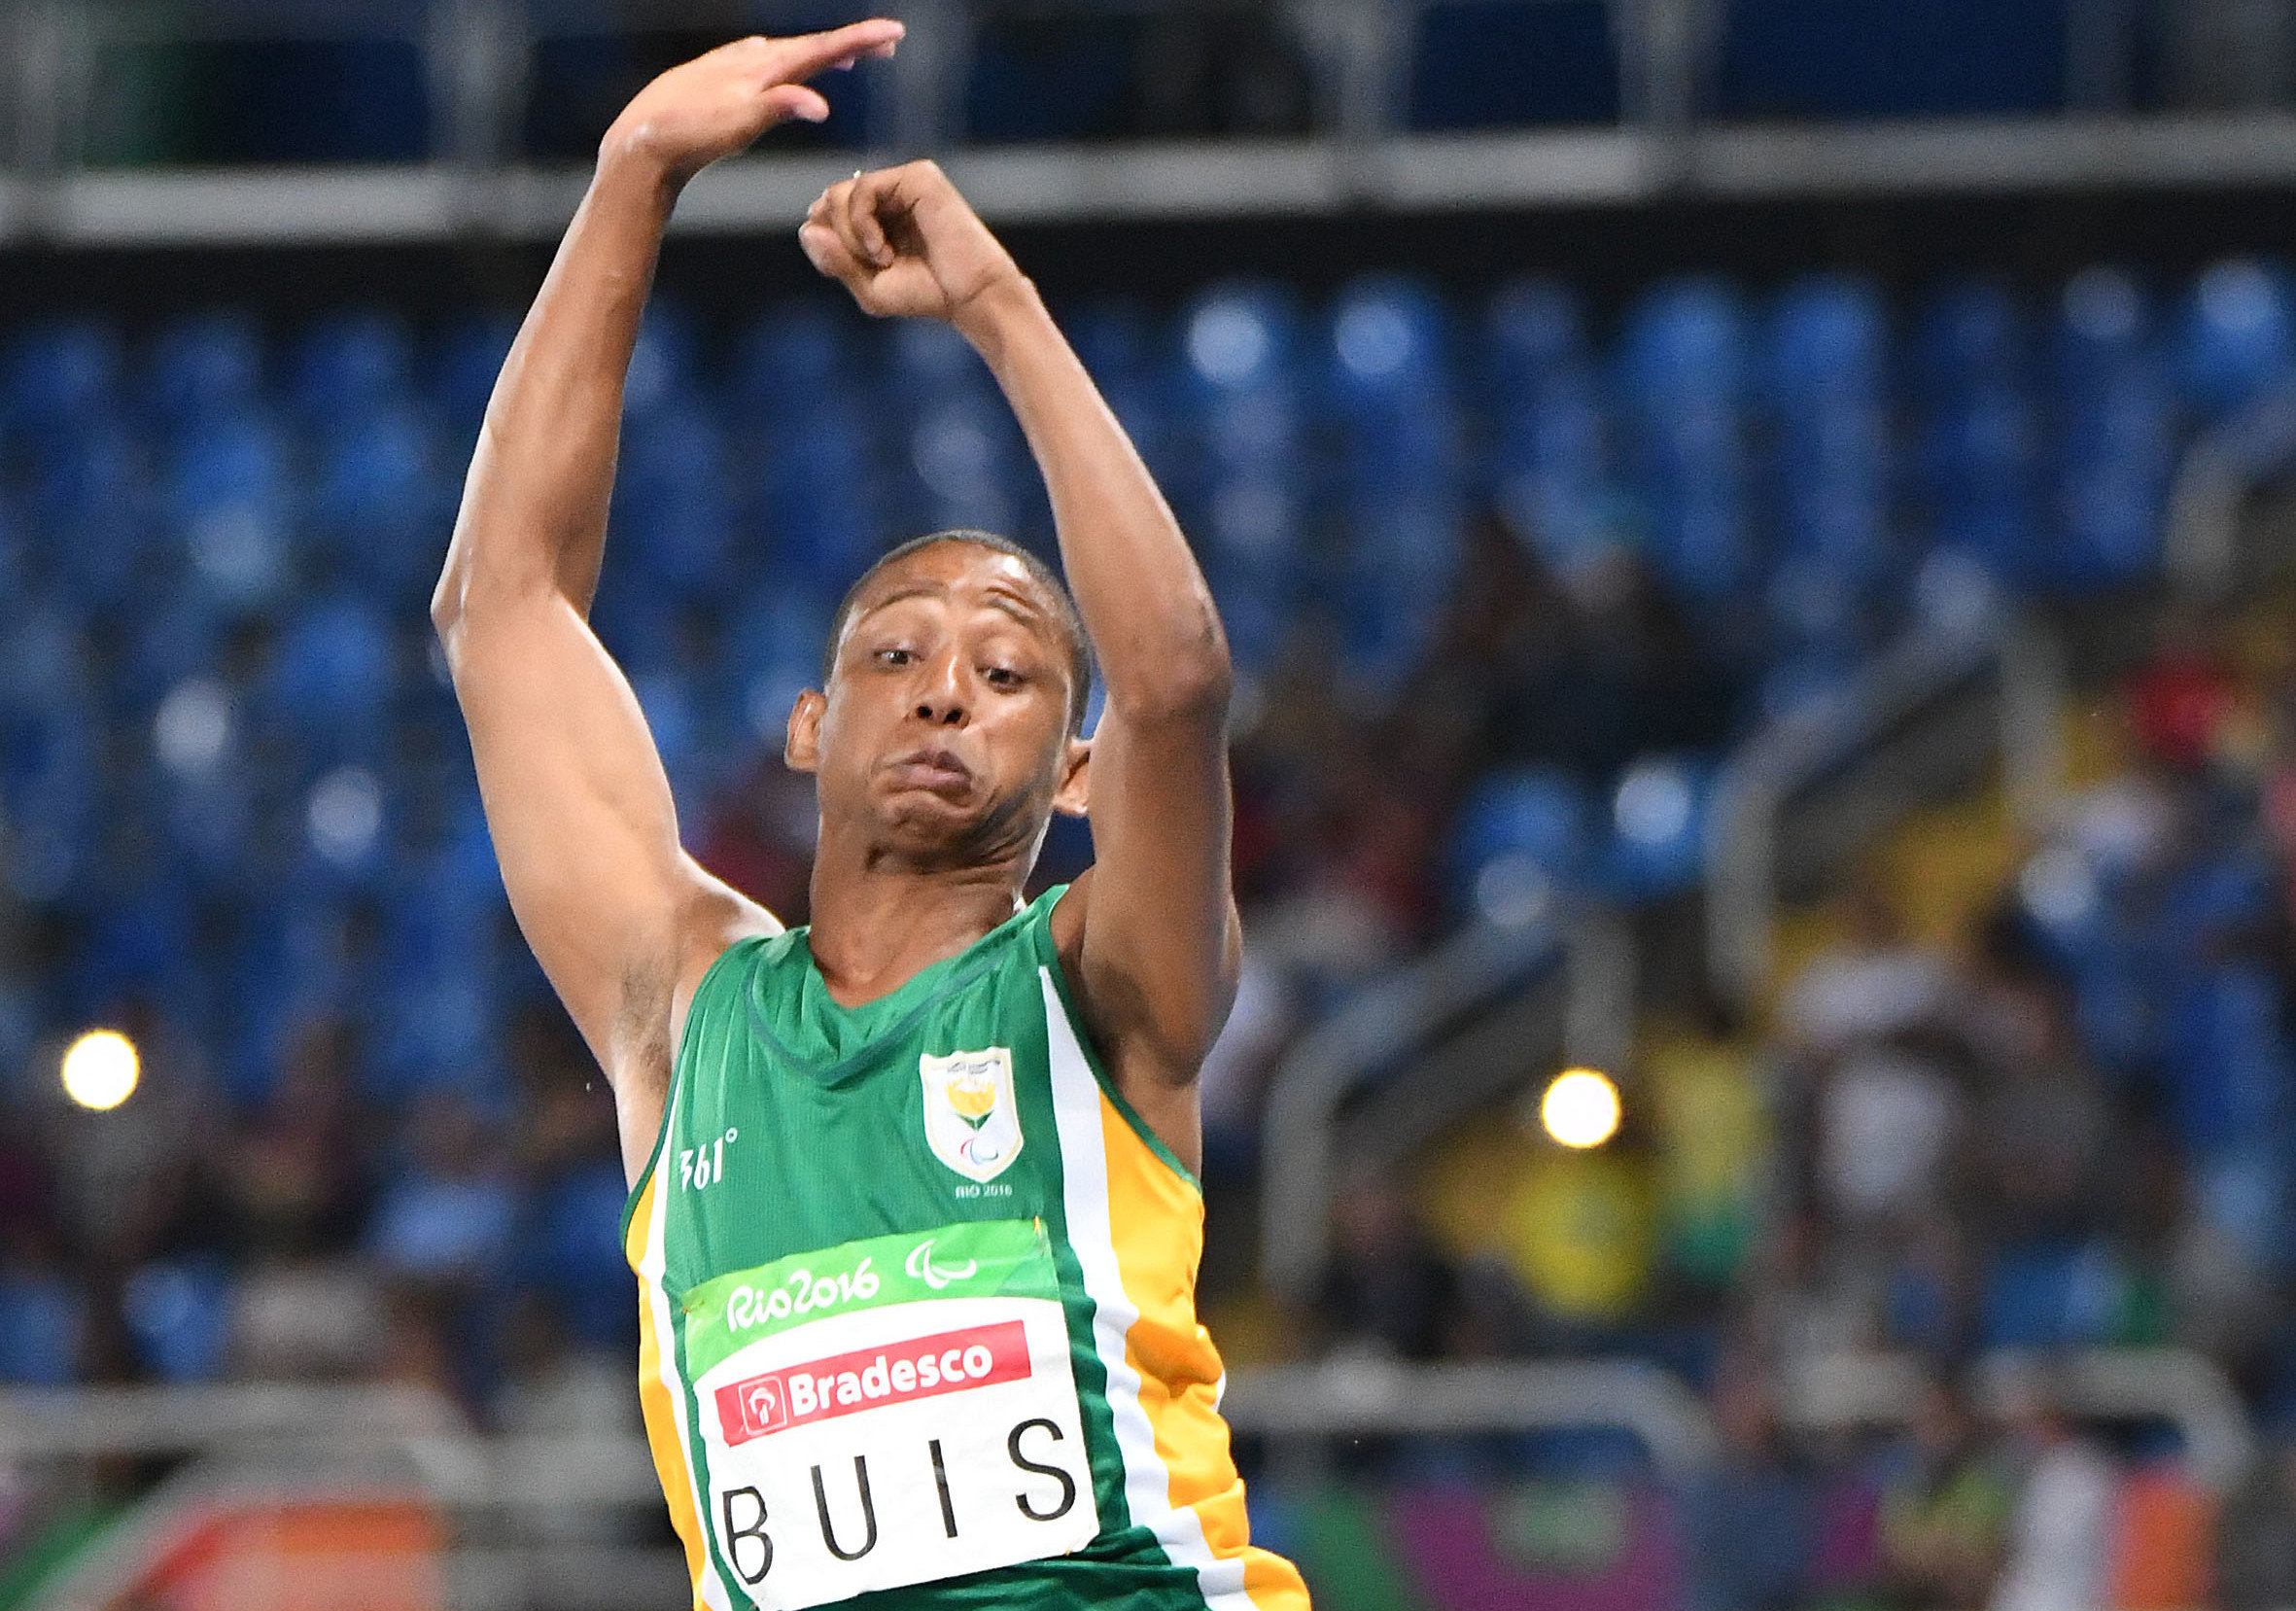 Four more medals come Team SA's way on bumper day in Rio